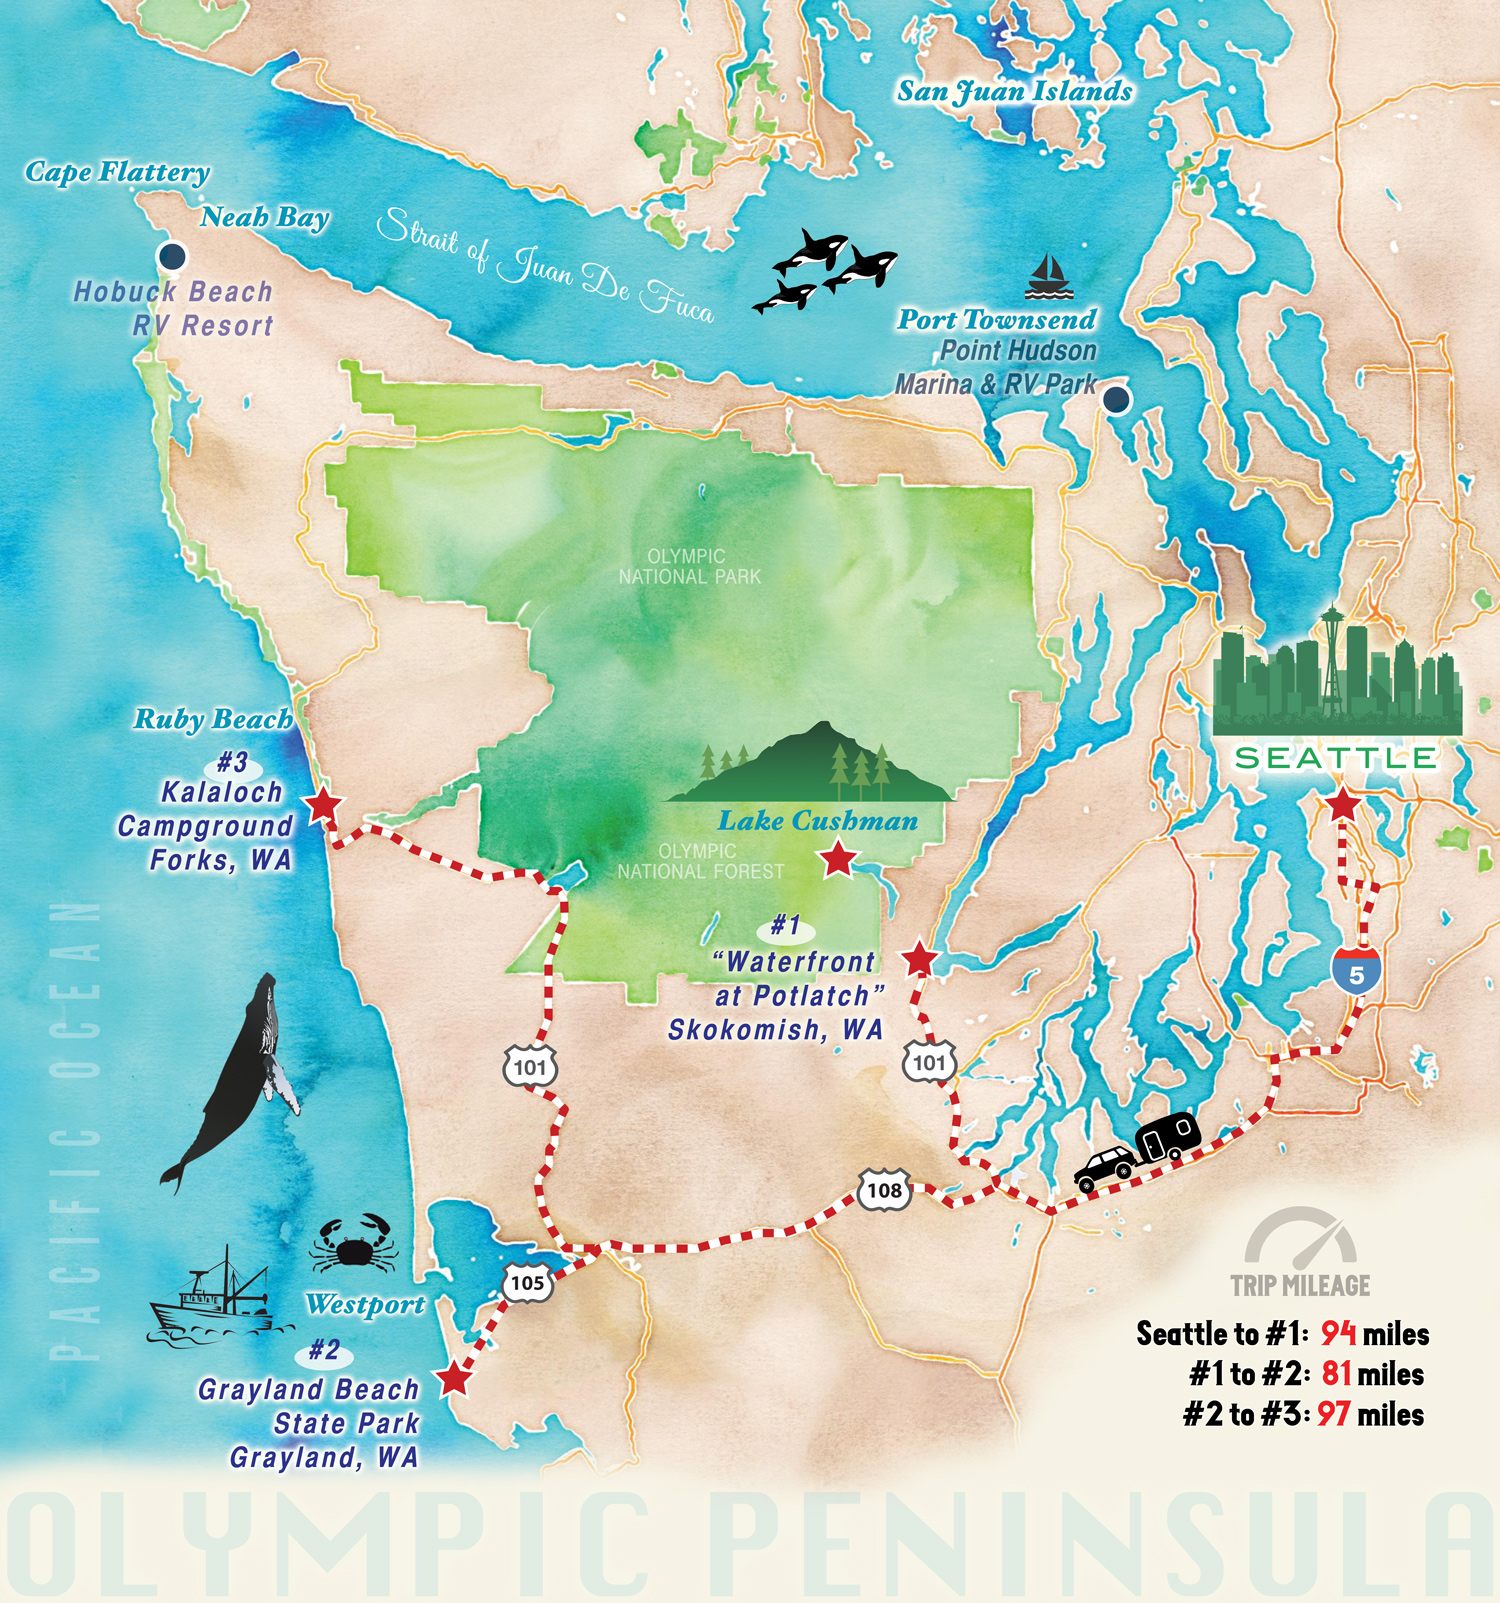 Map of the Olympic Peninsula in Washington State via J5MM.comj // #Airstream #GoRVing